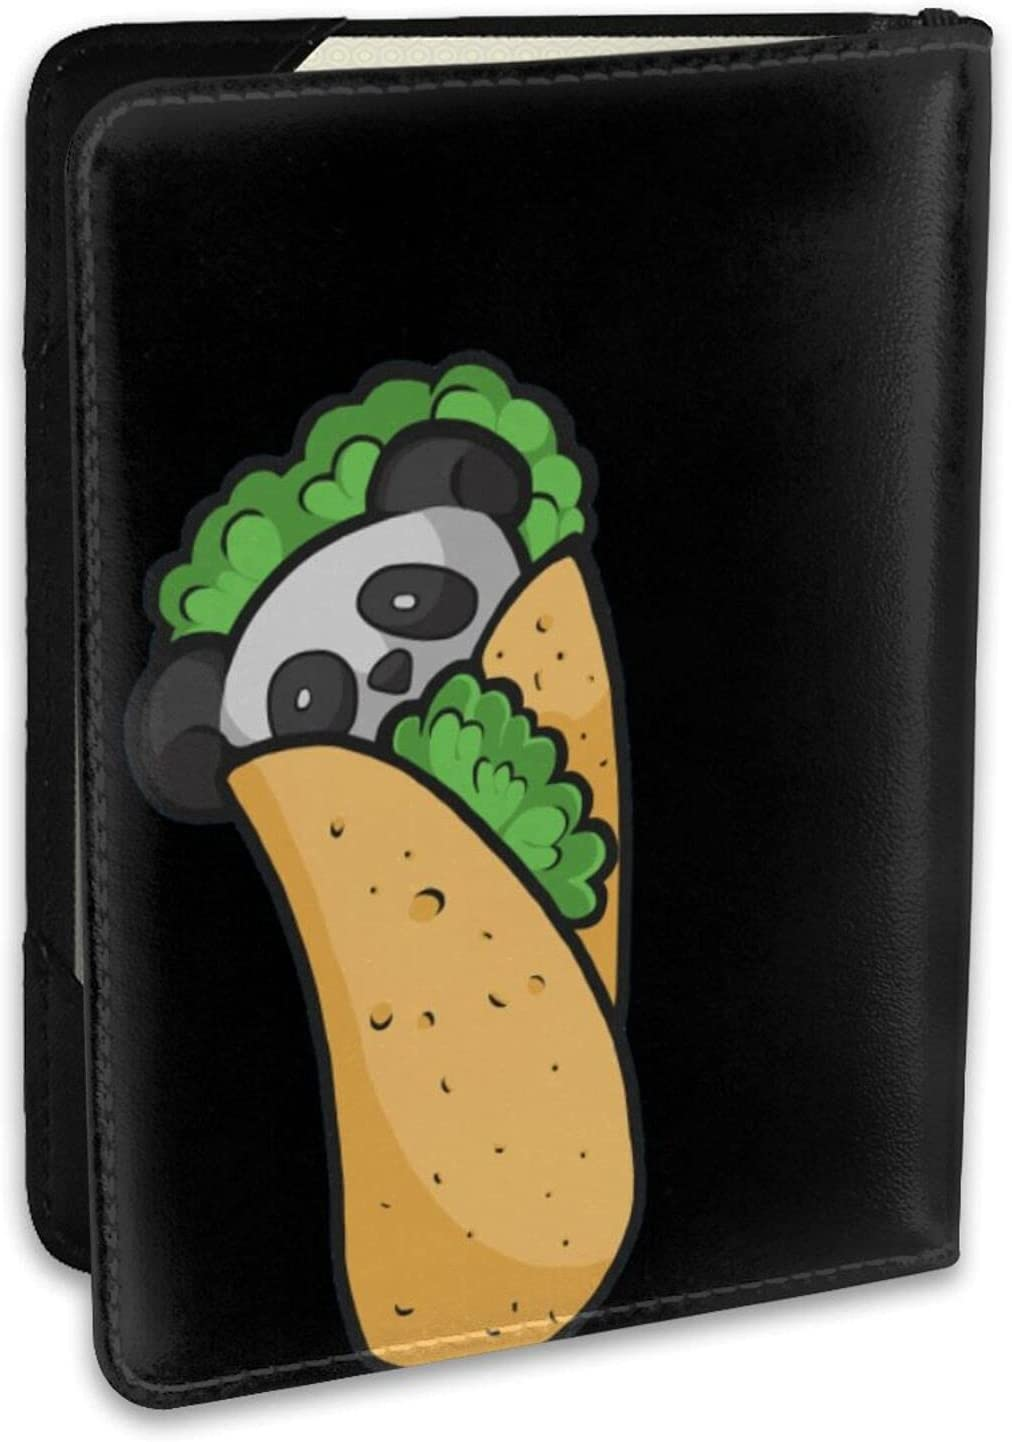 Very popular! Panda Burrito Taco Cute Leather Cover Cred Ranking integrated 1st place Holder Case Passport